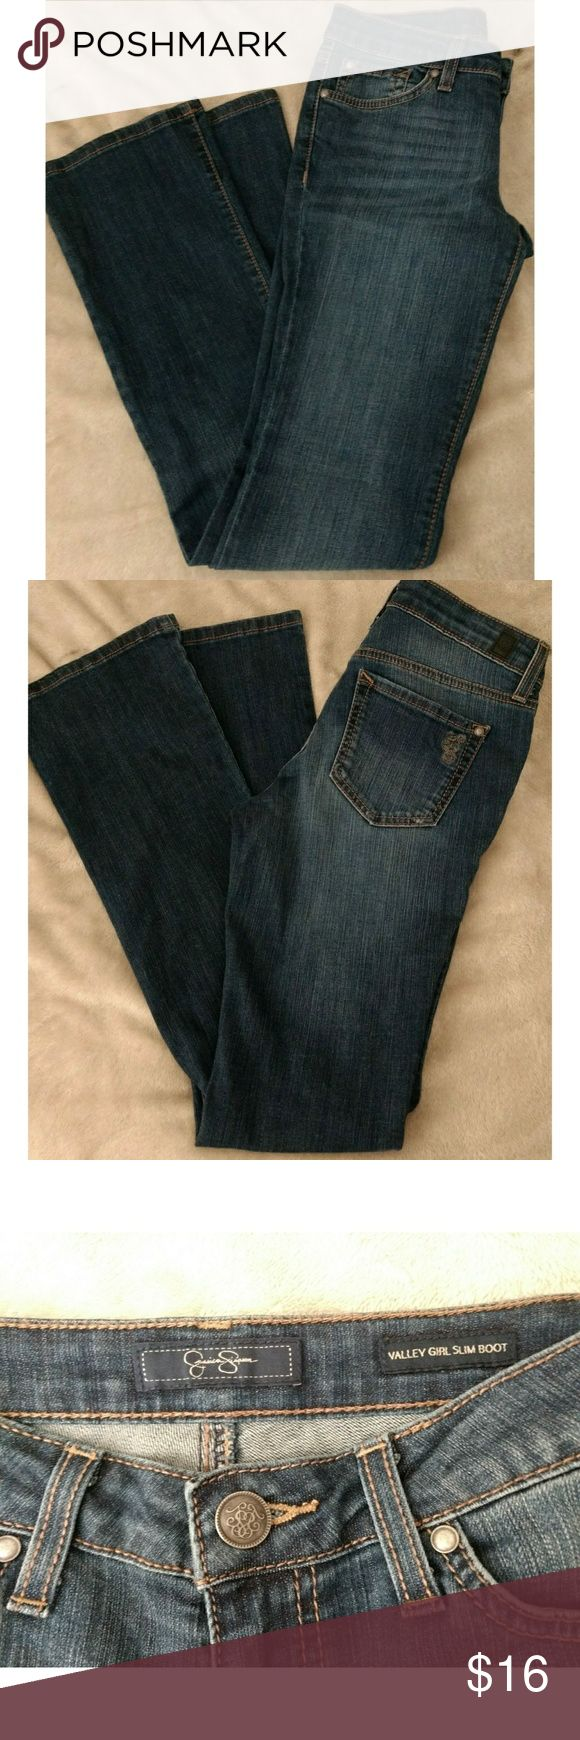 NWOT Jessica Simpson Boot Cut Jeans sz:24 Brand new,  without tags-of course the have not been worn nor washed.  JESSICA Simpson medium dark wash. valley girl bootcut leg jeans.  Size 24- which is a size 0. Last photos show the actual color of the jeans the best.  Dress up or wear casual. High quality jeans. Jessica Simpson Jeans Boot Cut